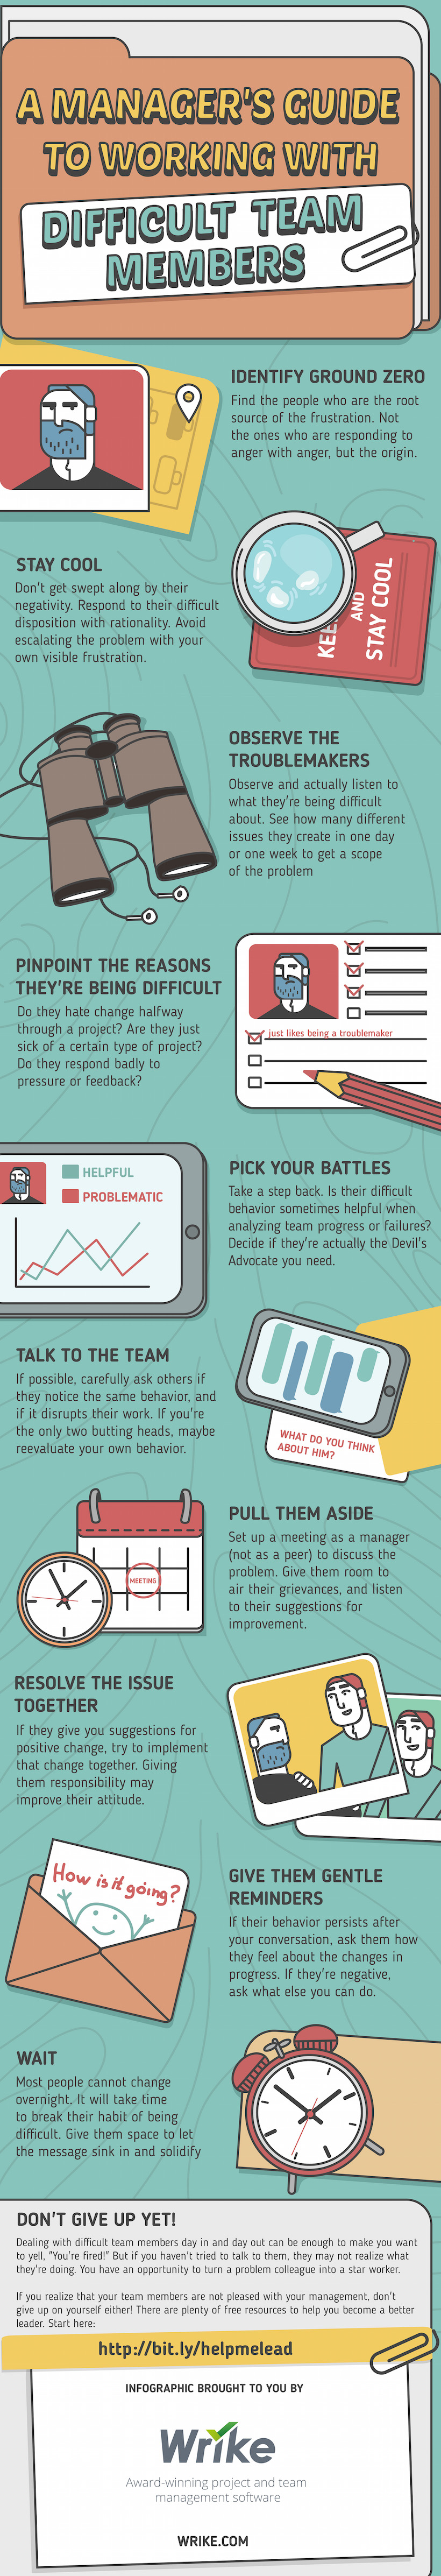 A Manager's Guide to Working with Difficult Team Members (#Infographic)